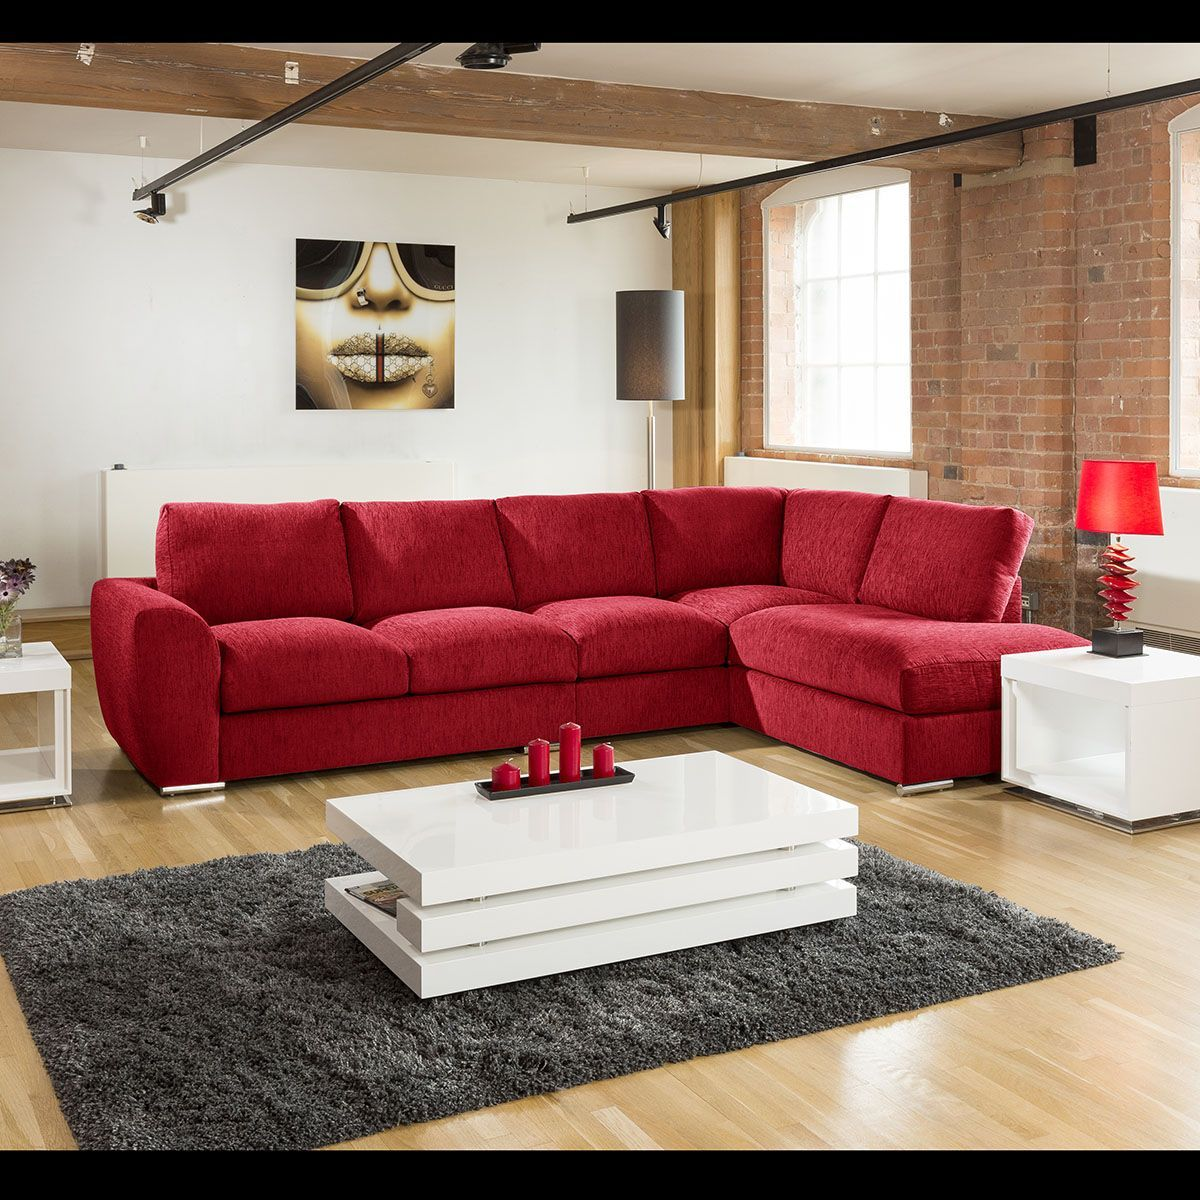 Extra Large L Shape Sofa Set Settee Corner Group 335x210cm Red R Extra Large L Shape Sofa Set Sofas For Small Spaces Small Corner Sofa White L Shaped Sofas